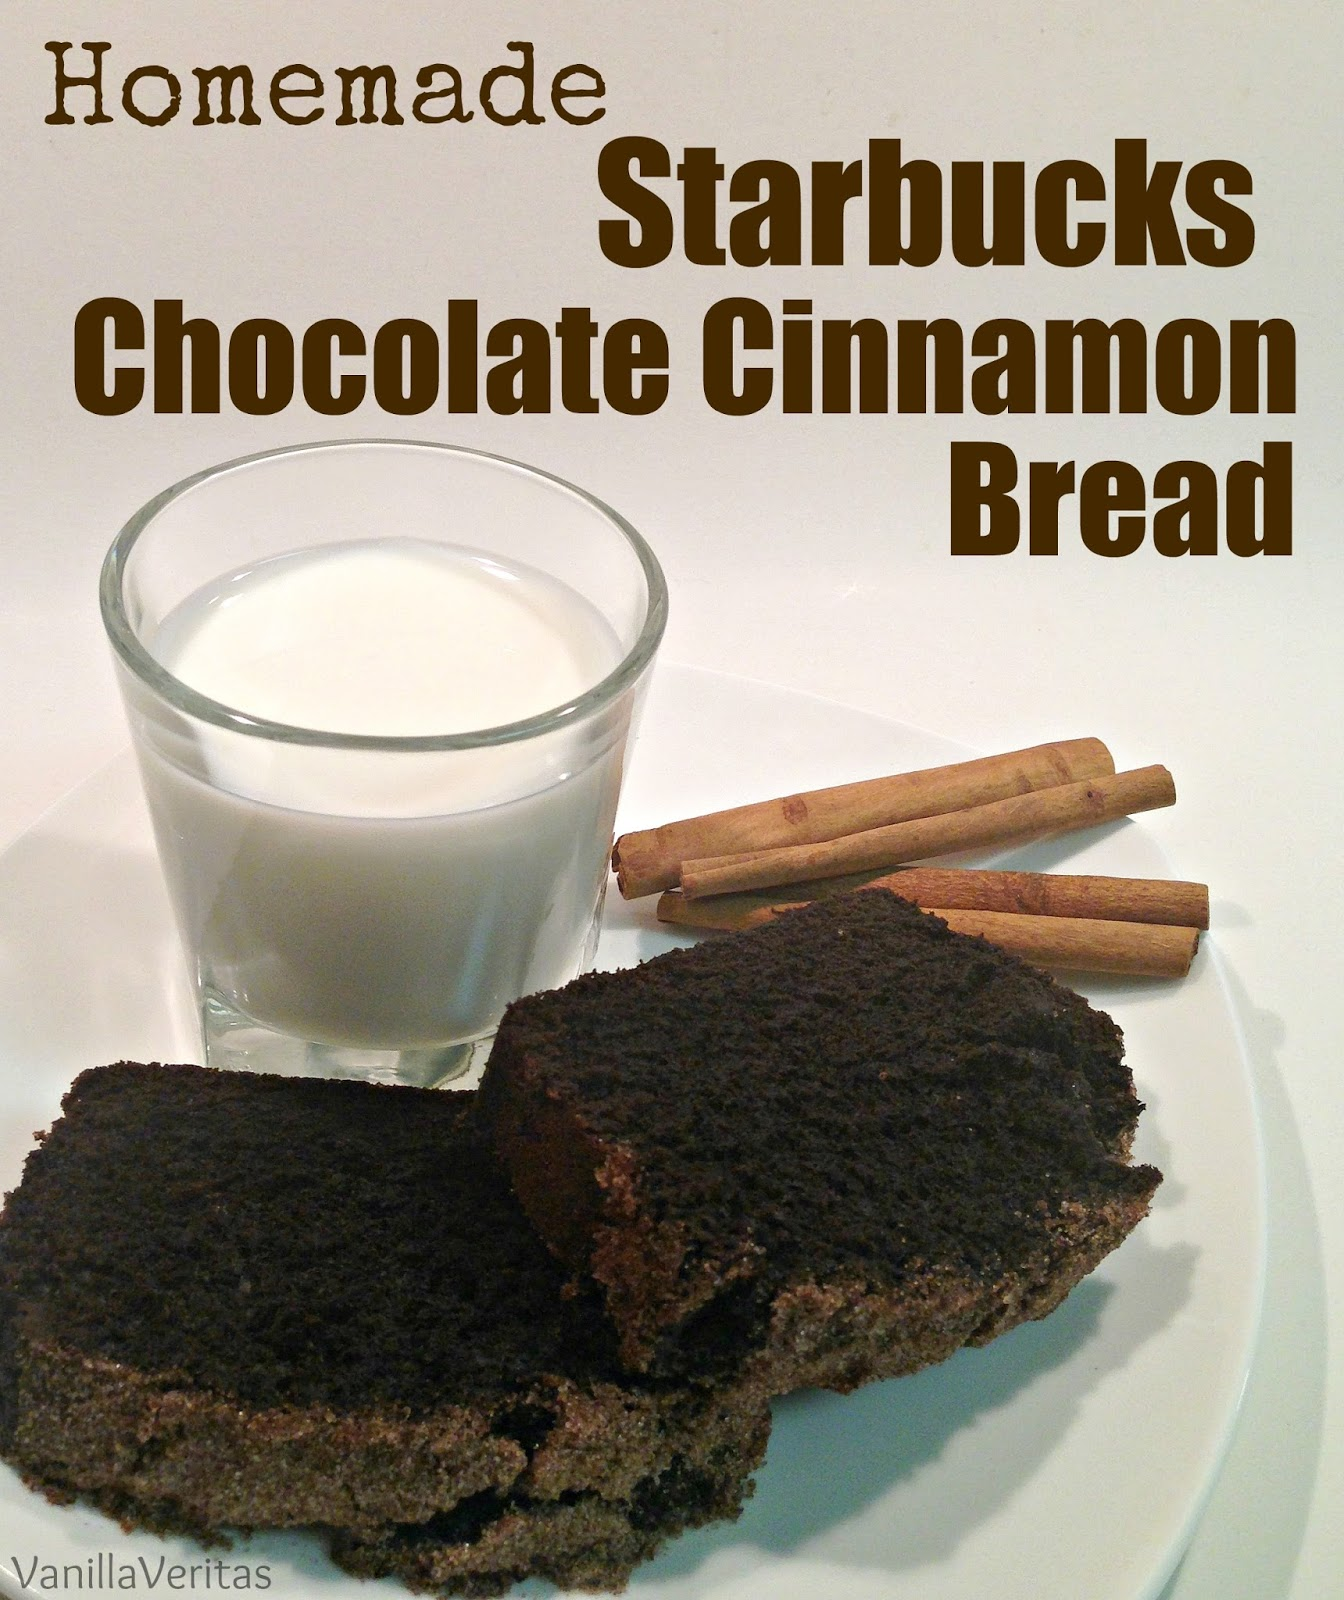 starbucks | chocolate cinnamon bread | chocolate | cinnamon | dessert | bread | pastry | copycat | dupe | homemade | recipe | coffee | coffeehouse | snack | cake | baked goods